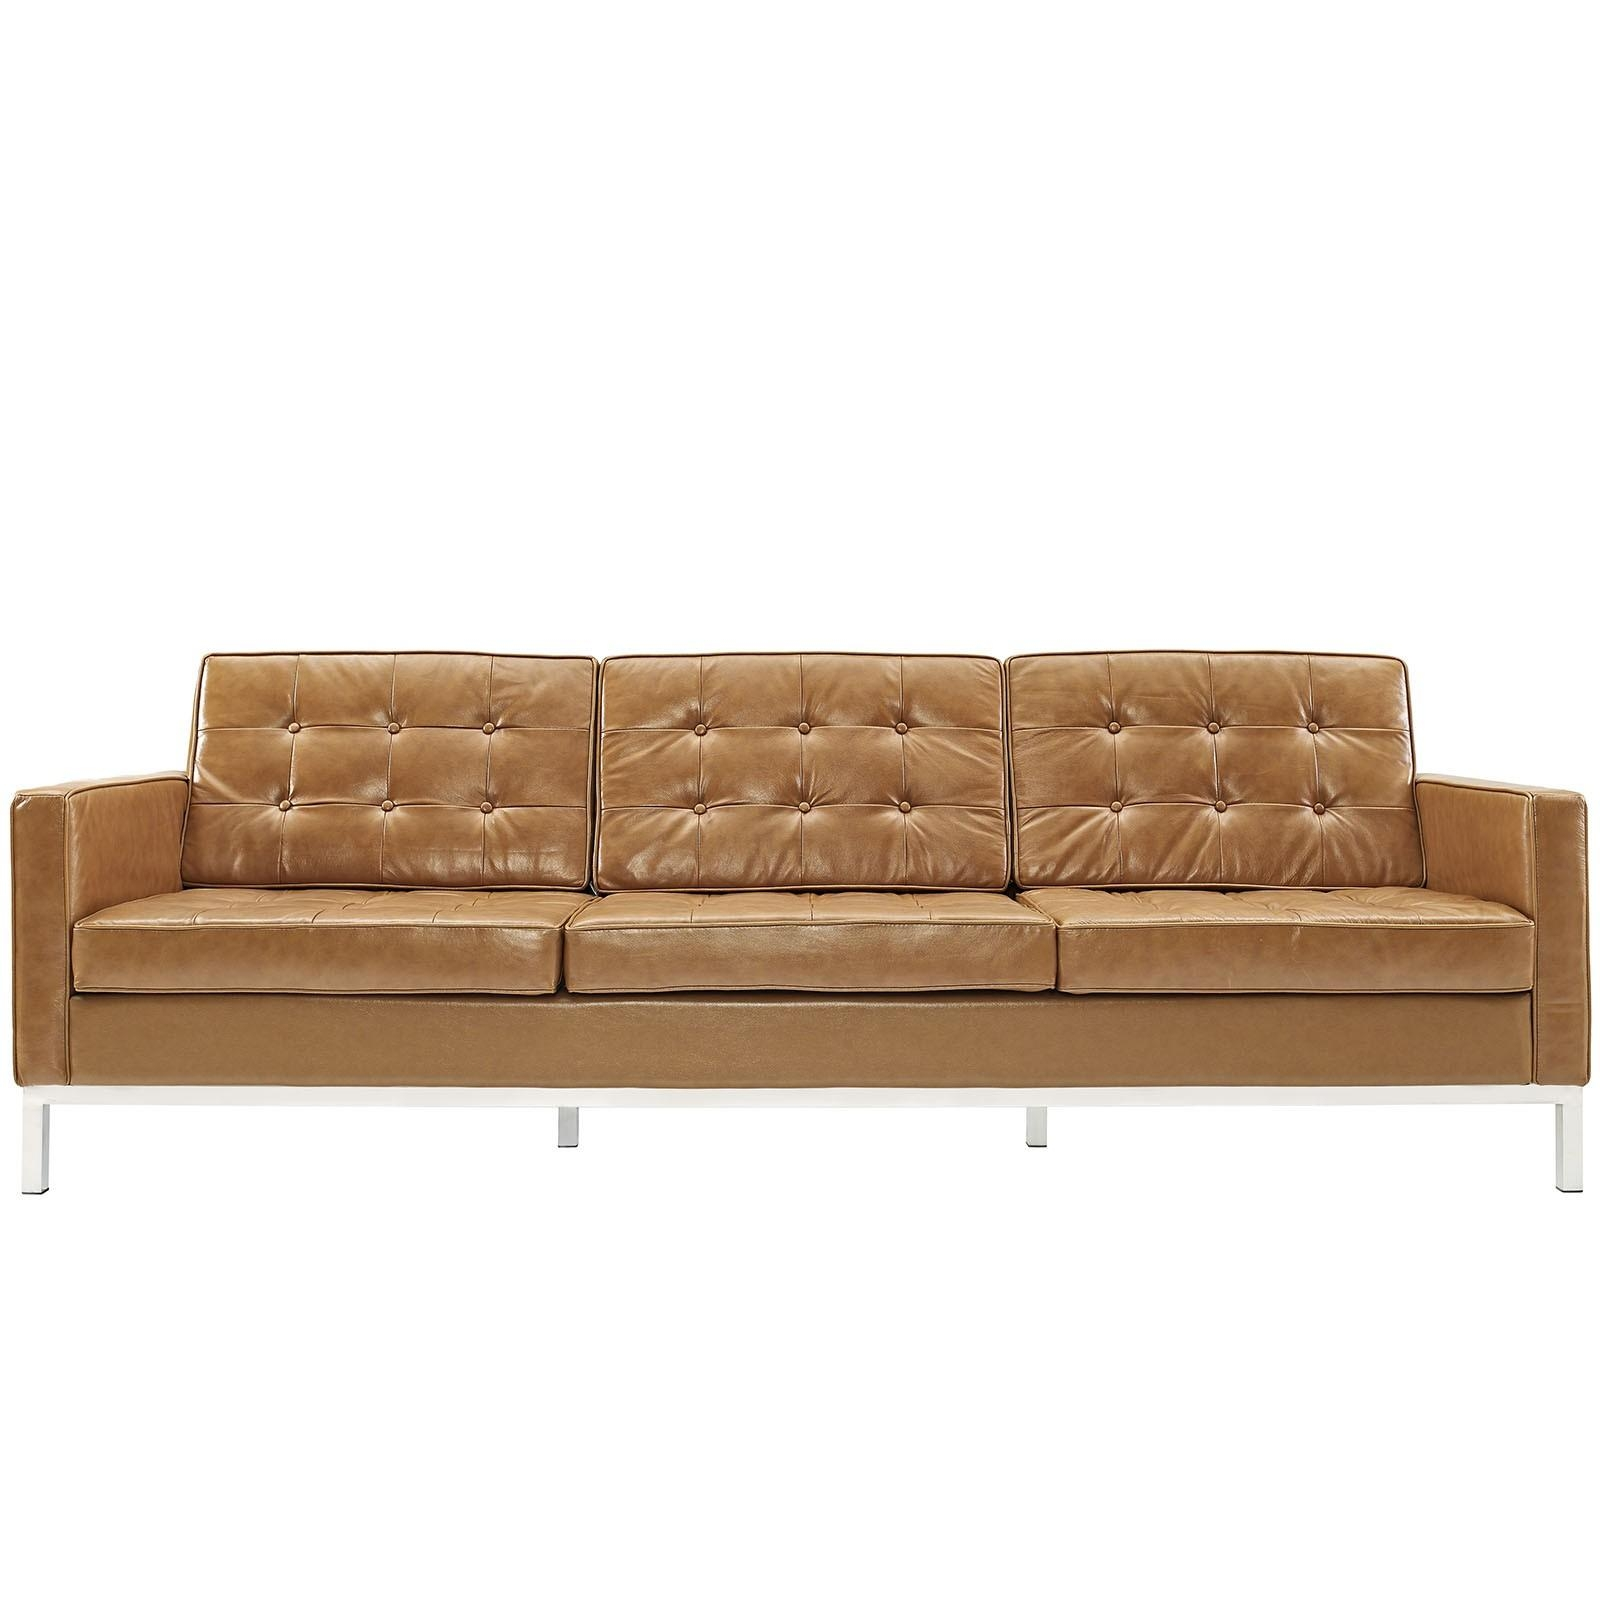 20 best ideas florence knoll leather sofas sofa ideas. Black Bedroom Furniture Sets. Home Design Ideas